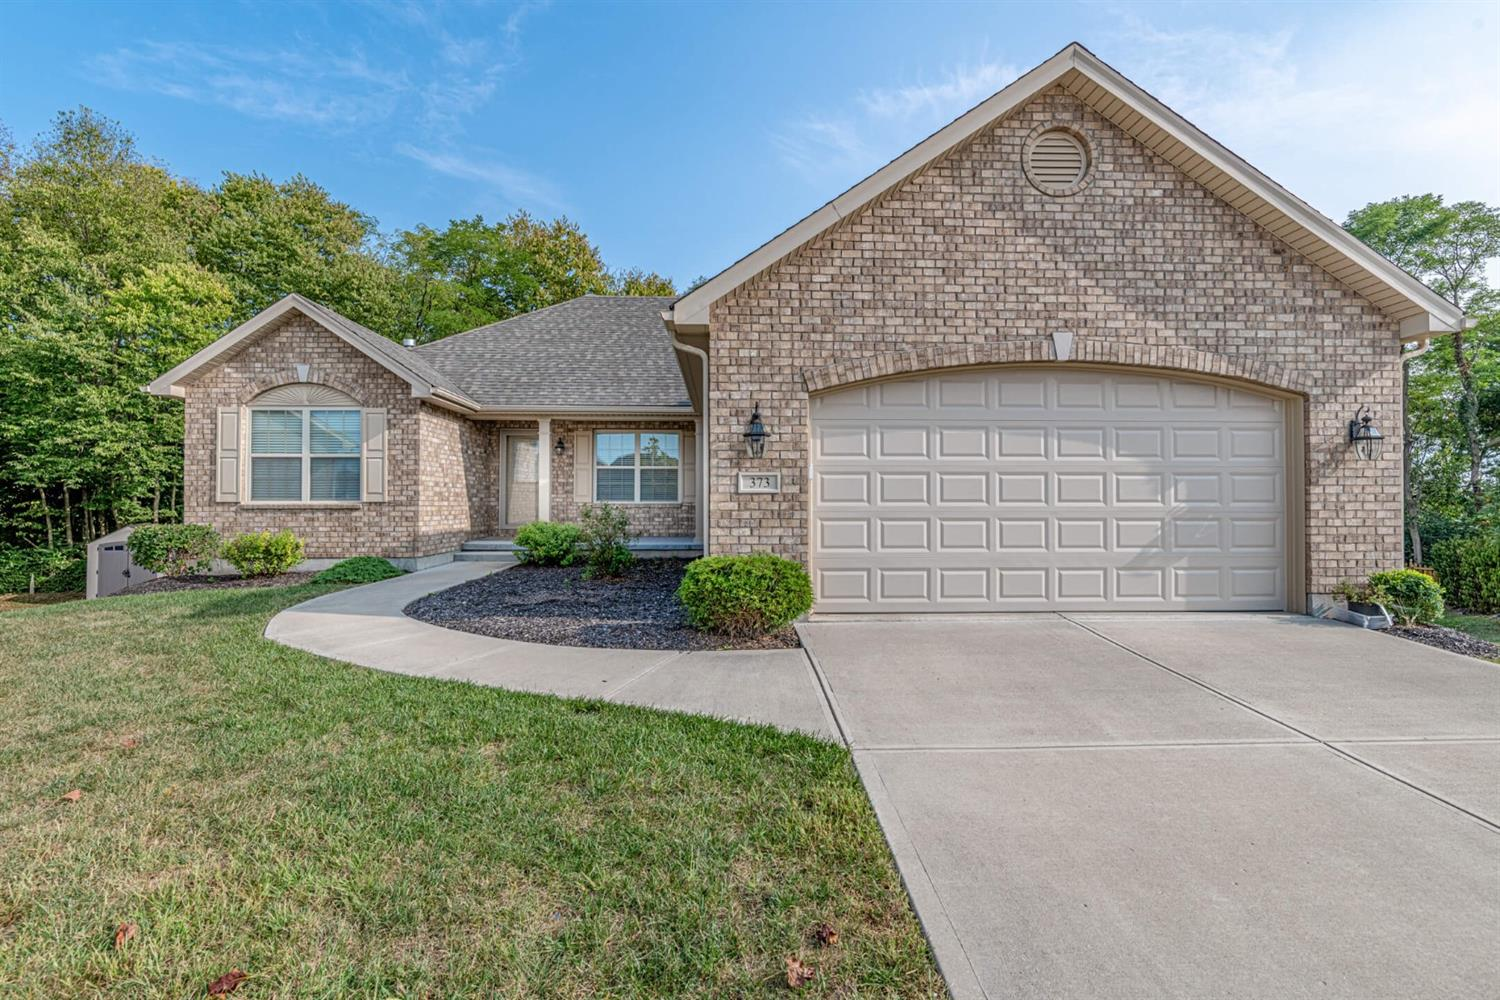 373 Clear Springs Ct Carlisle, OH